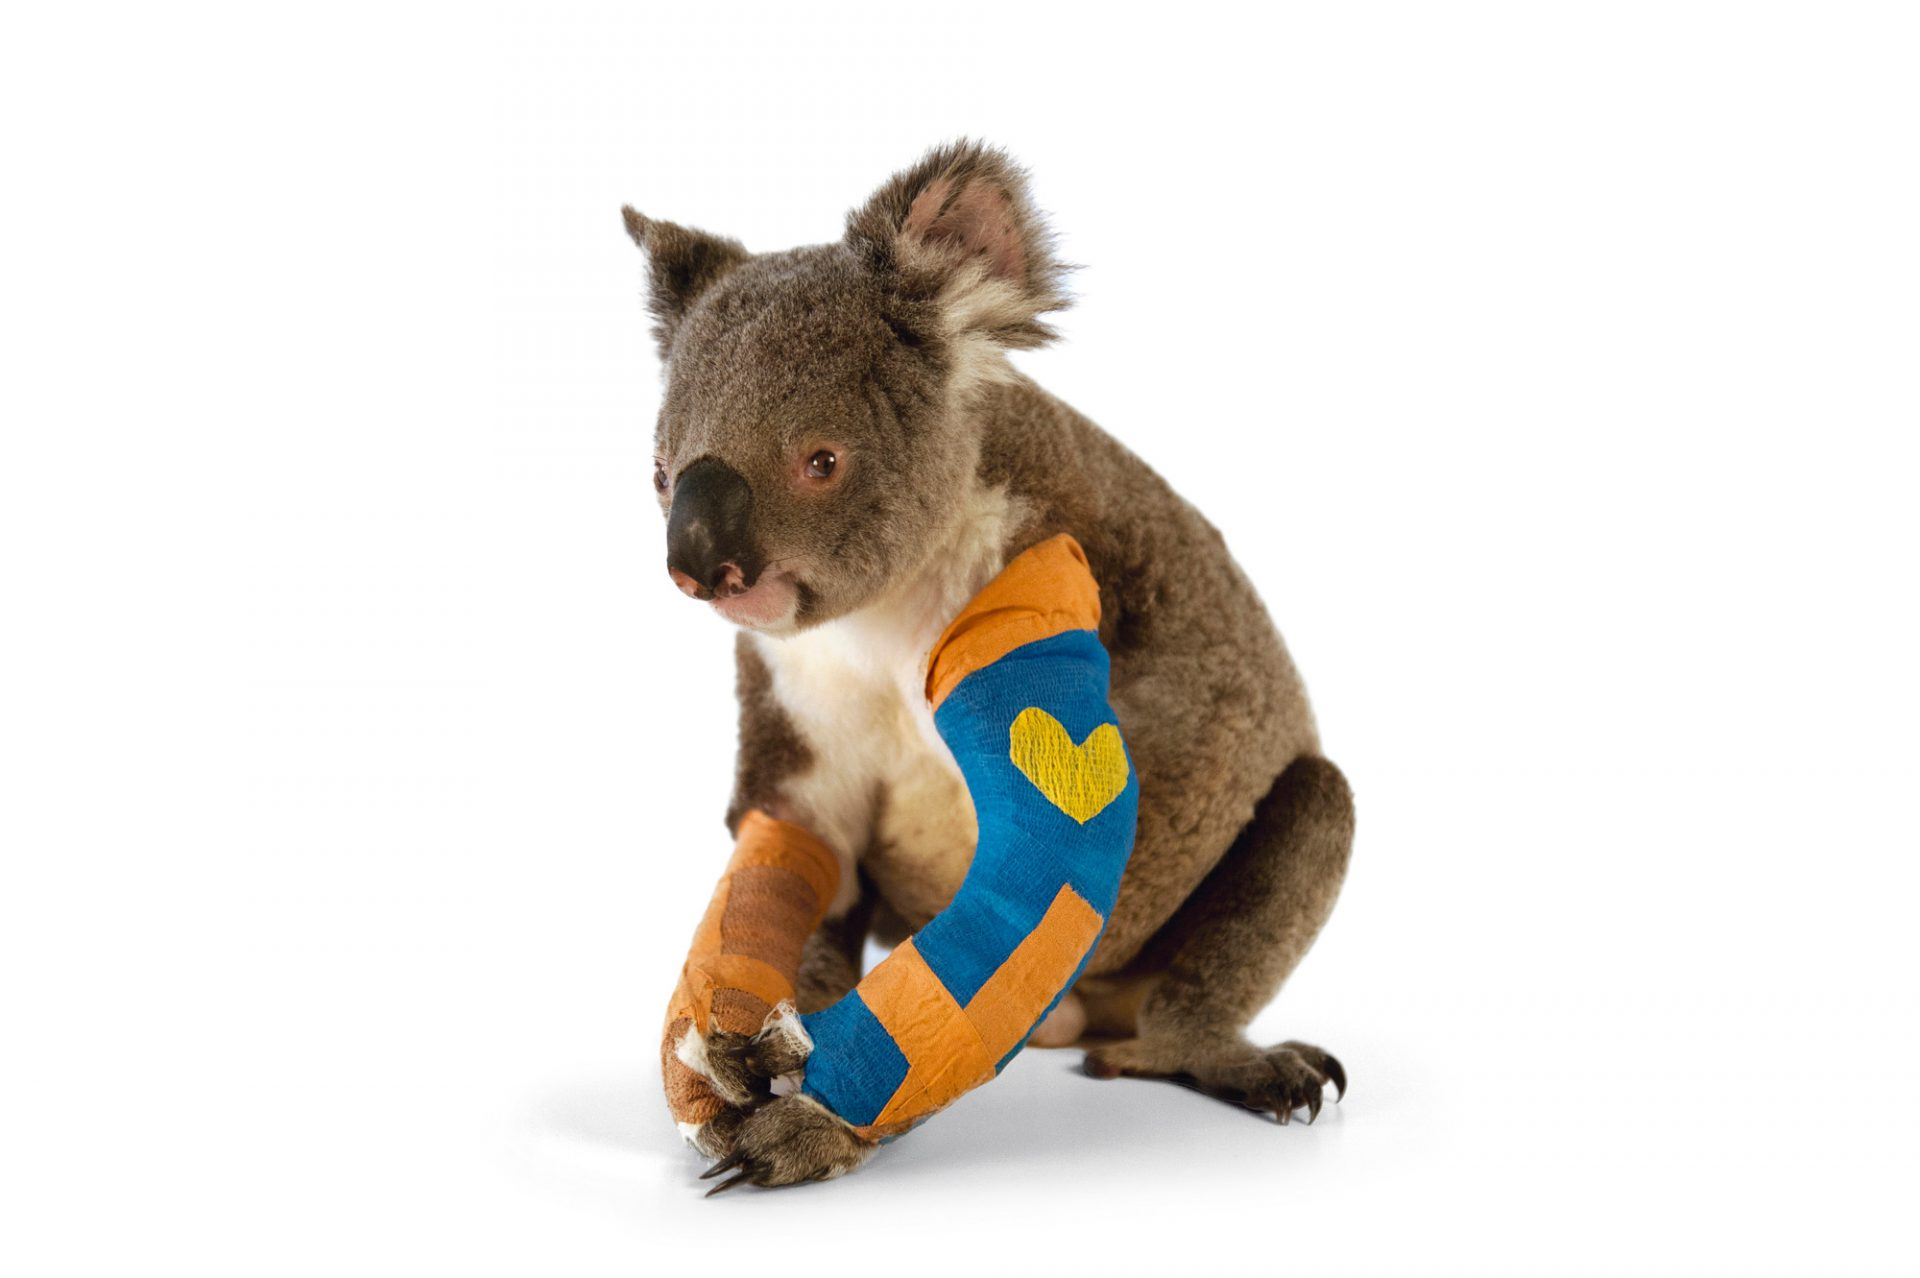 Harley the federally threatened koala recovers from two broken legs at the Australia Zoo Wildlife Hospital in Queensland. He was hit by a car, which is a common occurrence with koalas and fatal for many.